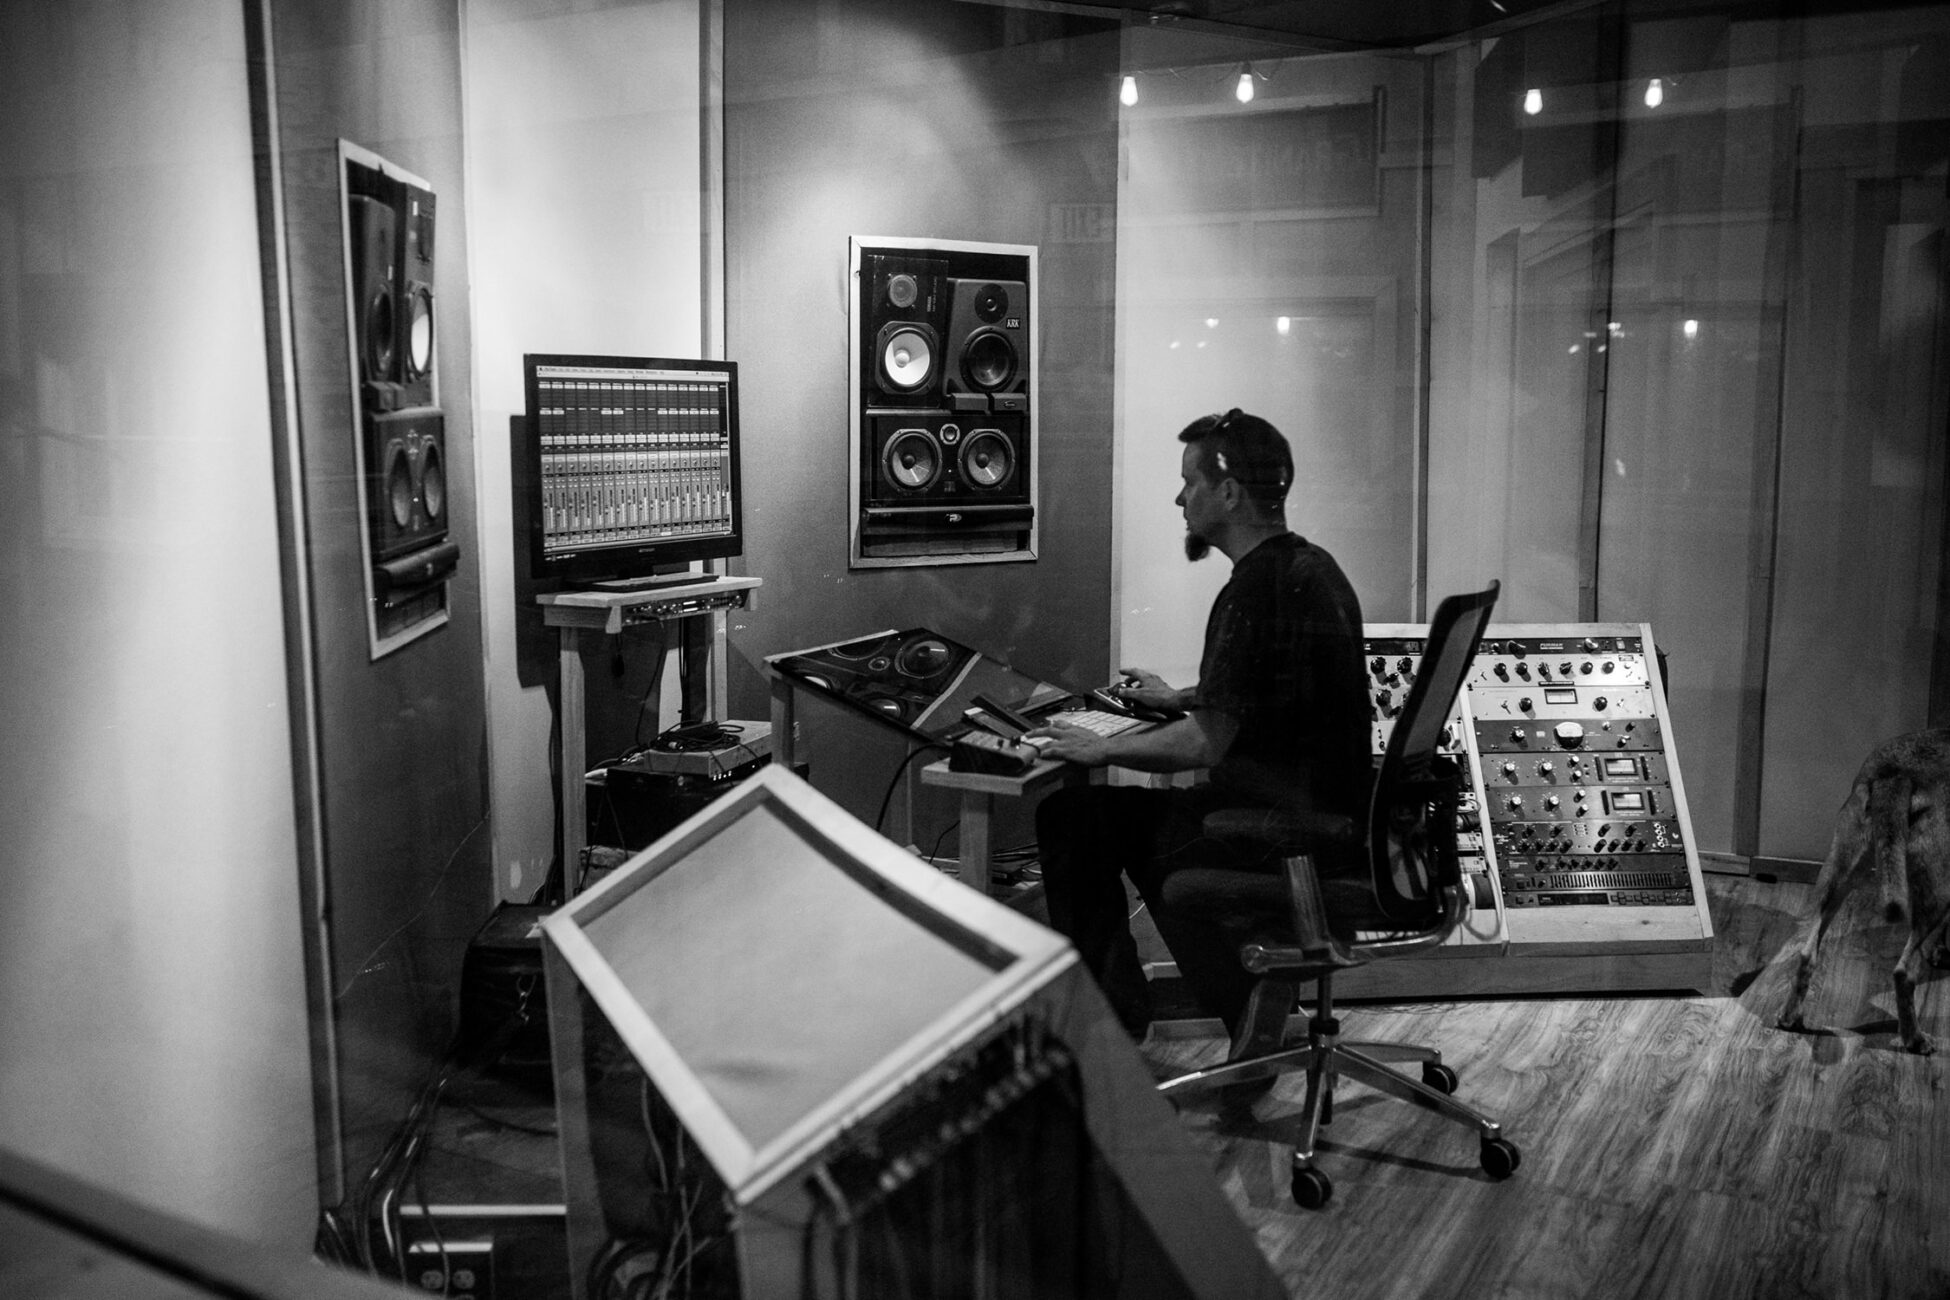 branding photography session - man working at a recoding studio desk